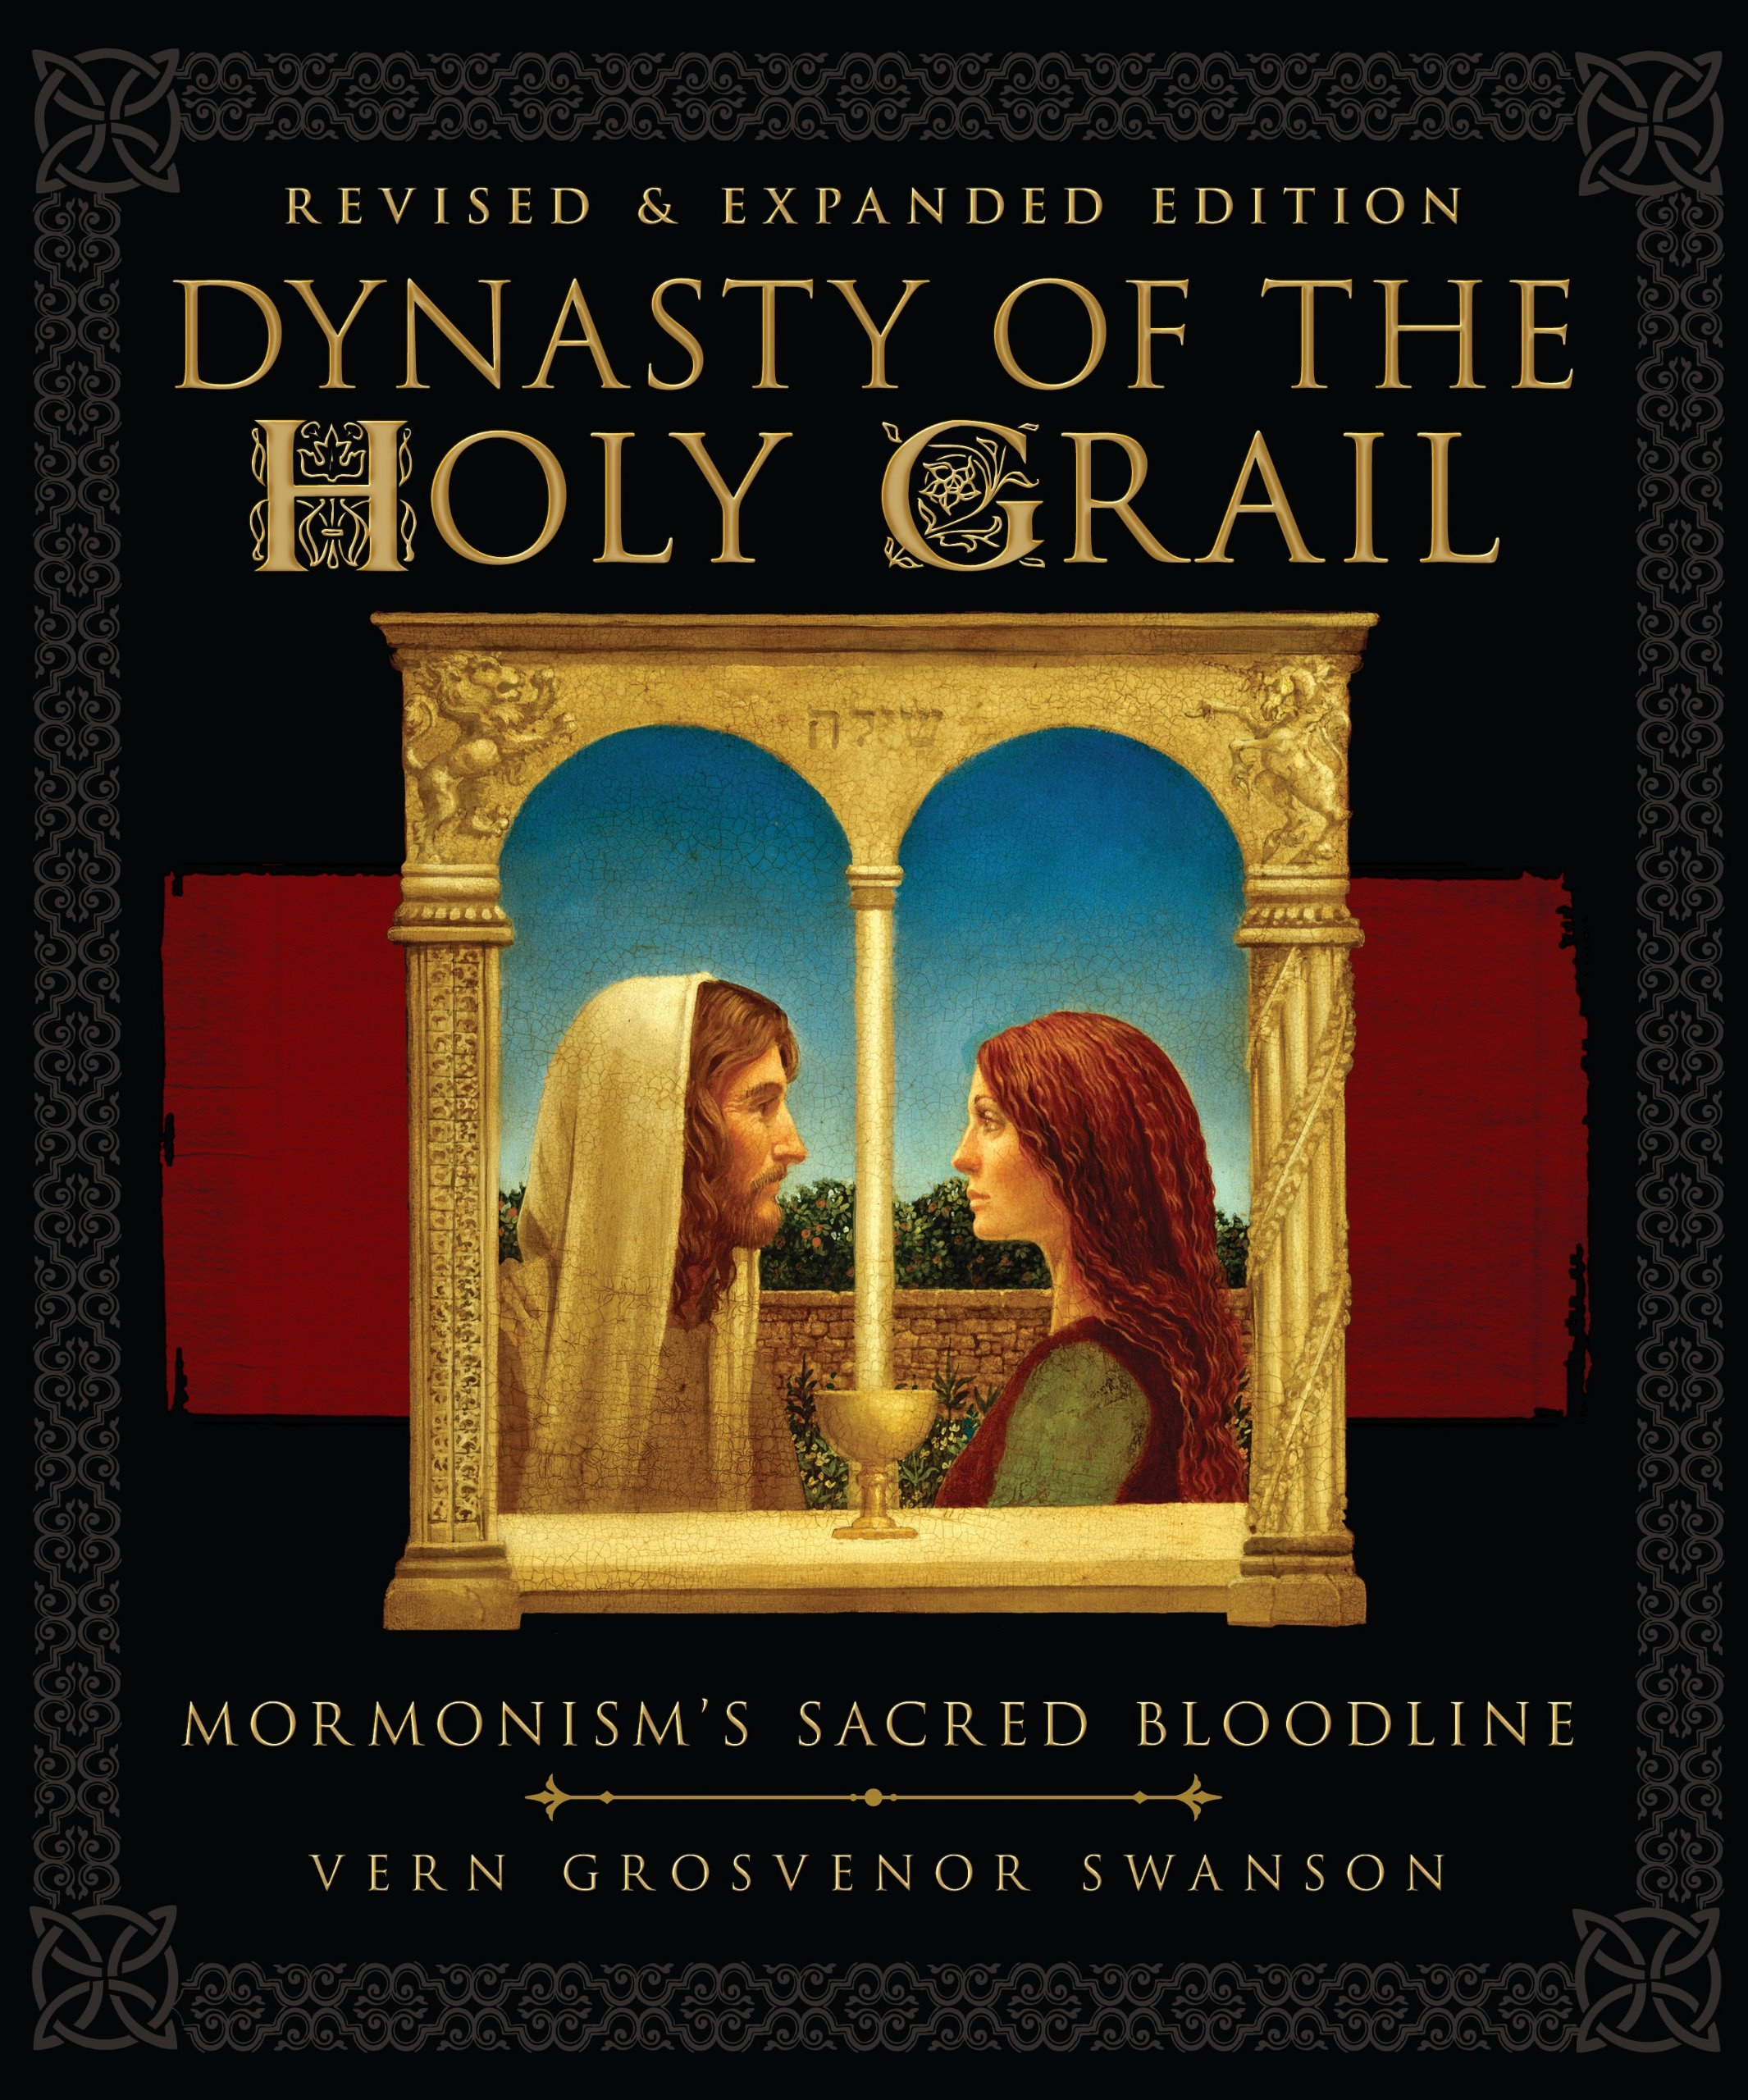 Image for DYNASTY OF THE HOLY GRAIL - Mormonism's Sacred Bloodline